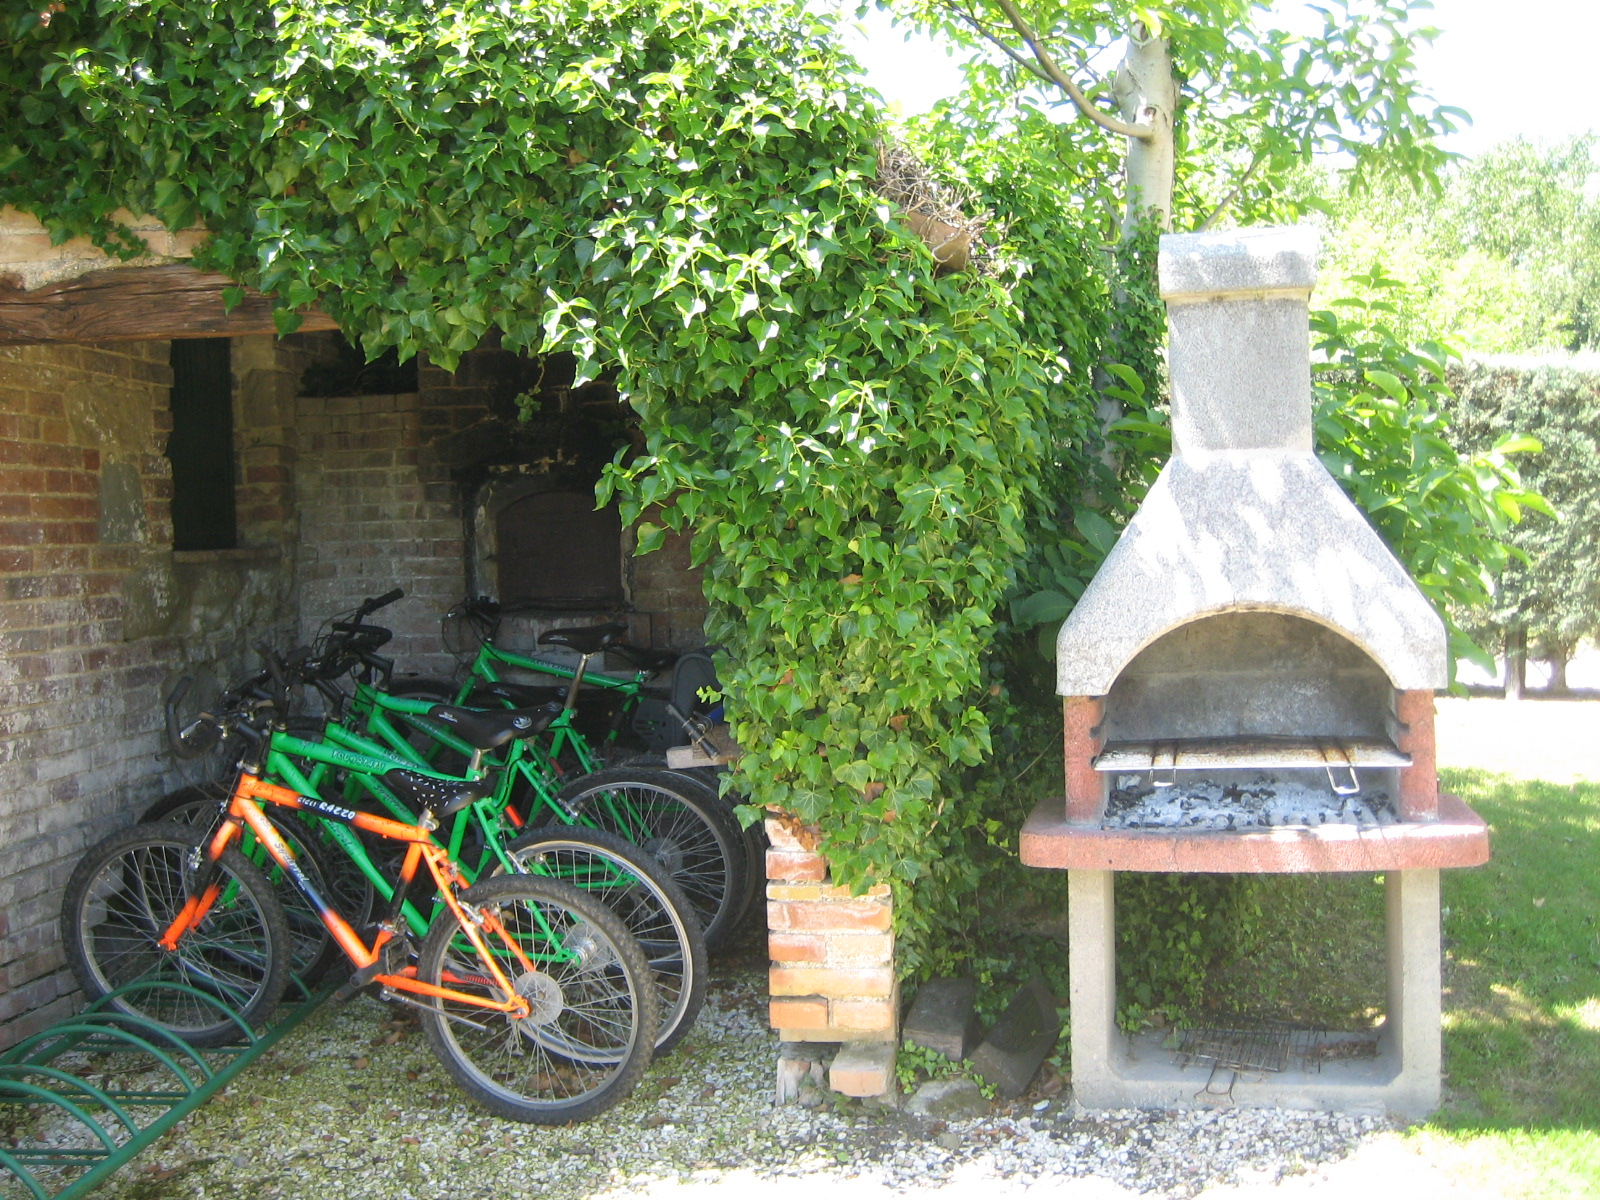 agriturismo Italy family holiday, farm holidays in Italy, bikes for rent